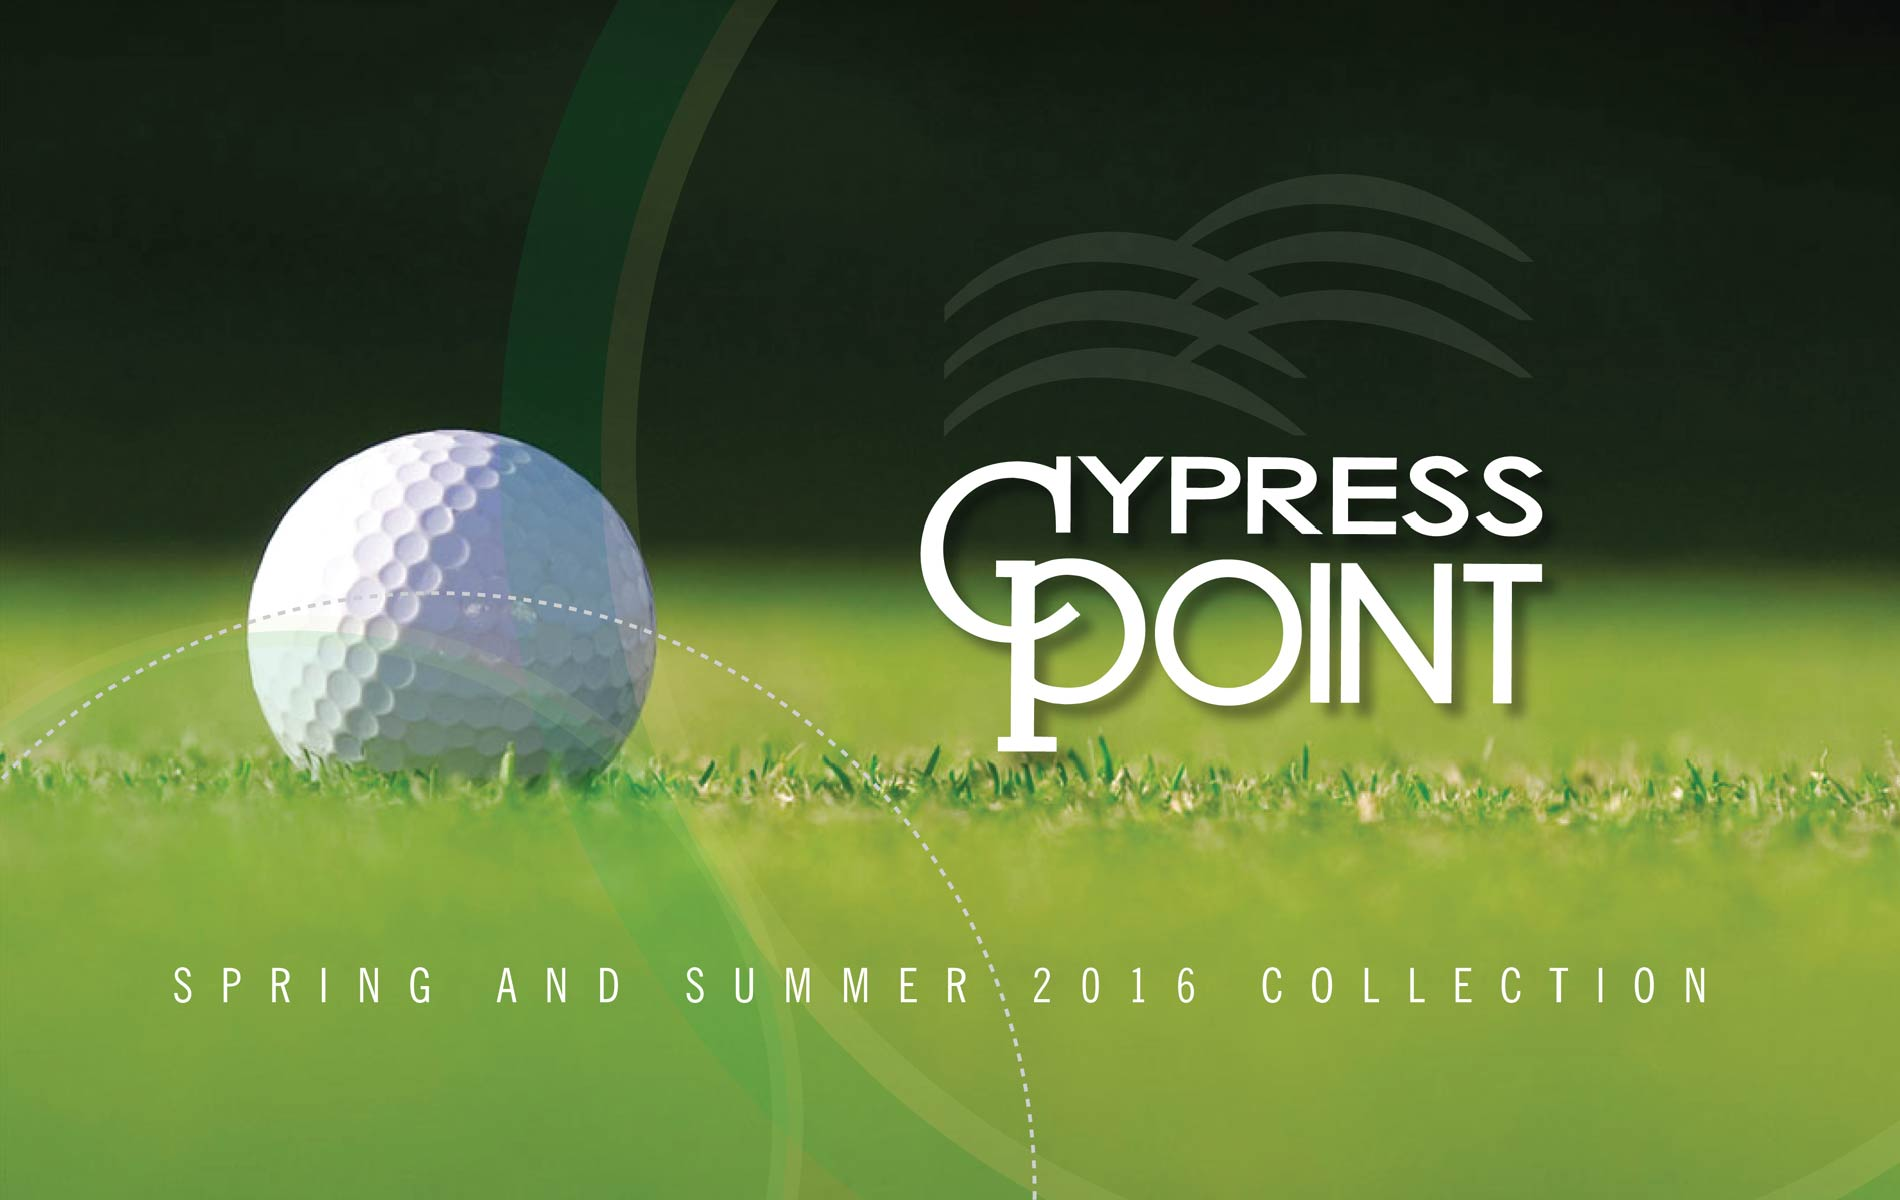 Cypress Point Golf Clothing